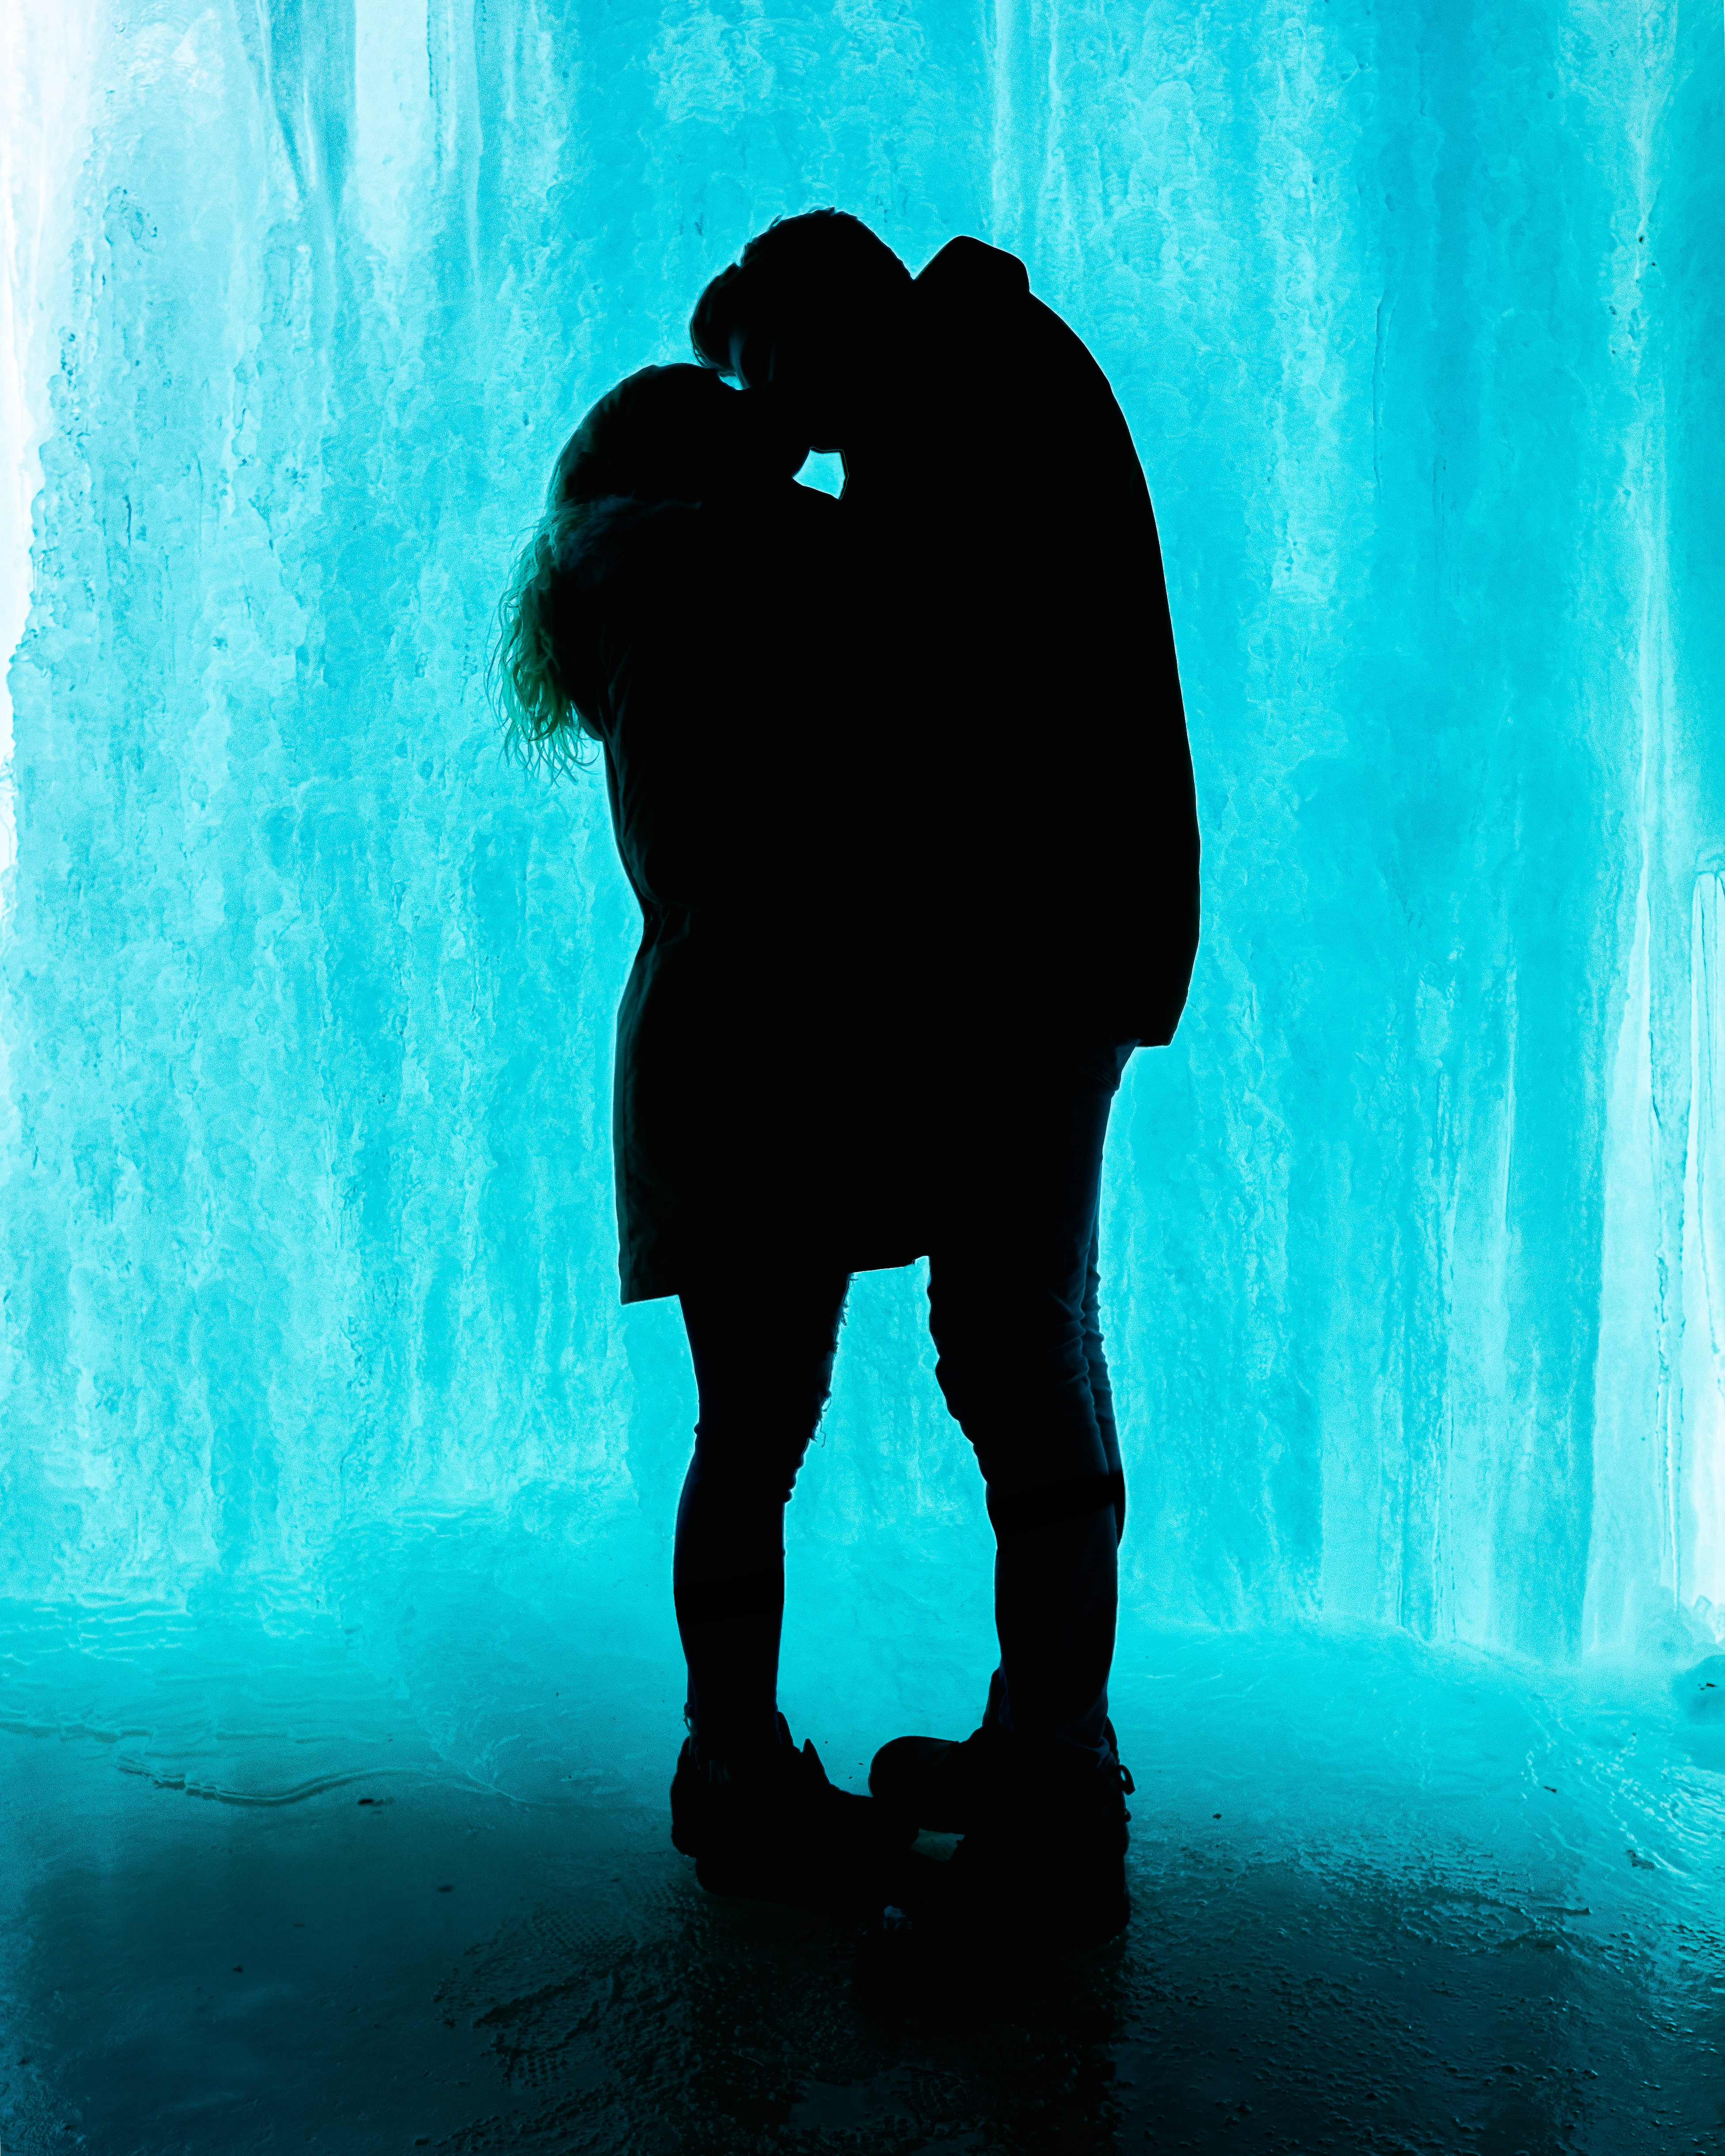 78672 download wallpaper Love, Lovers, Kiss, Ice screensavers and pictures for free